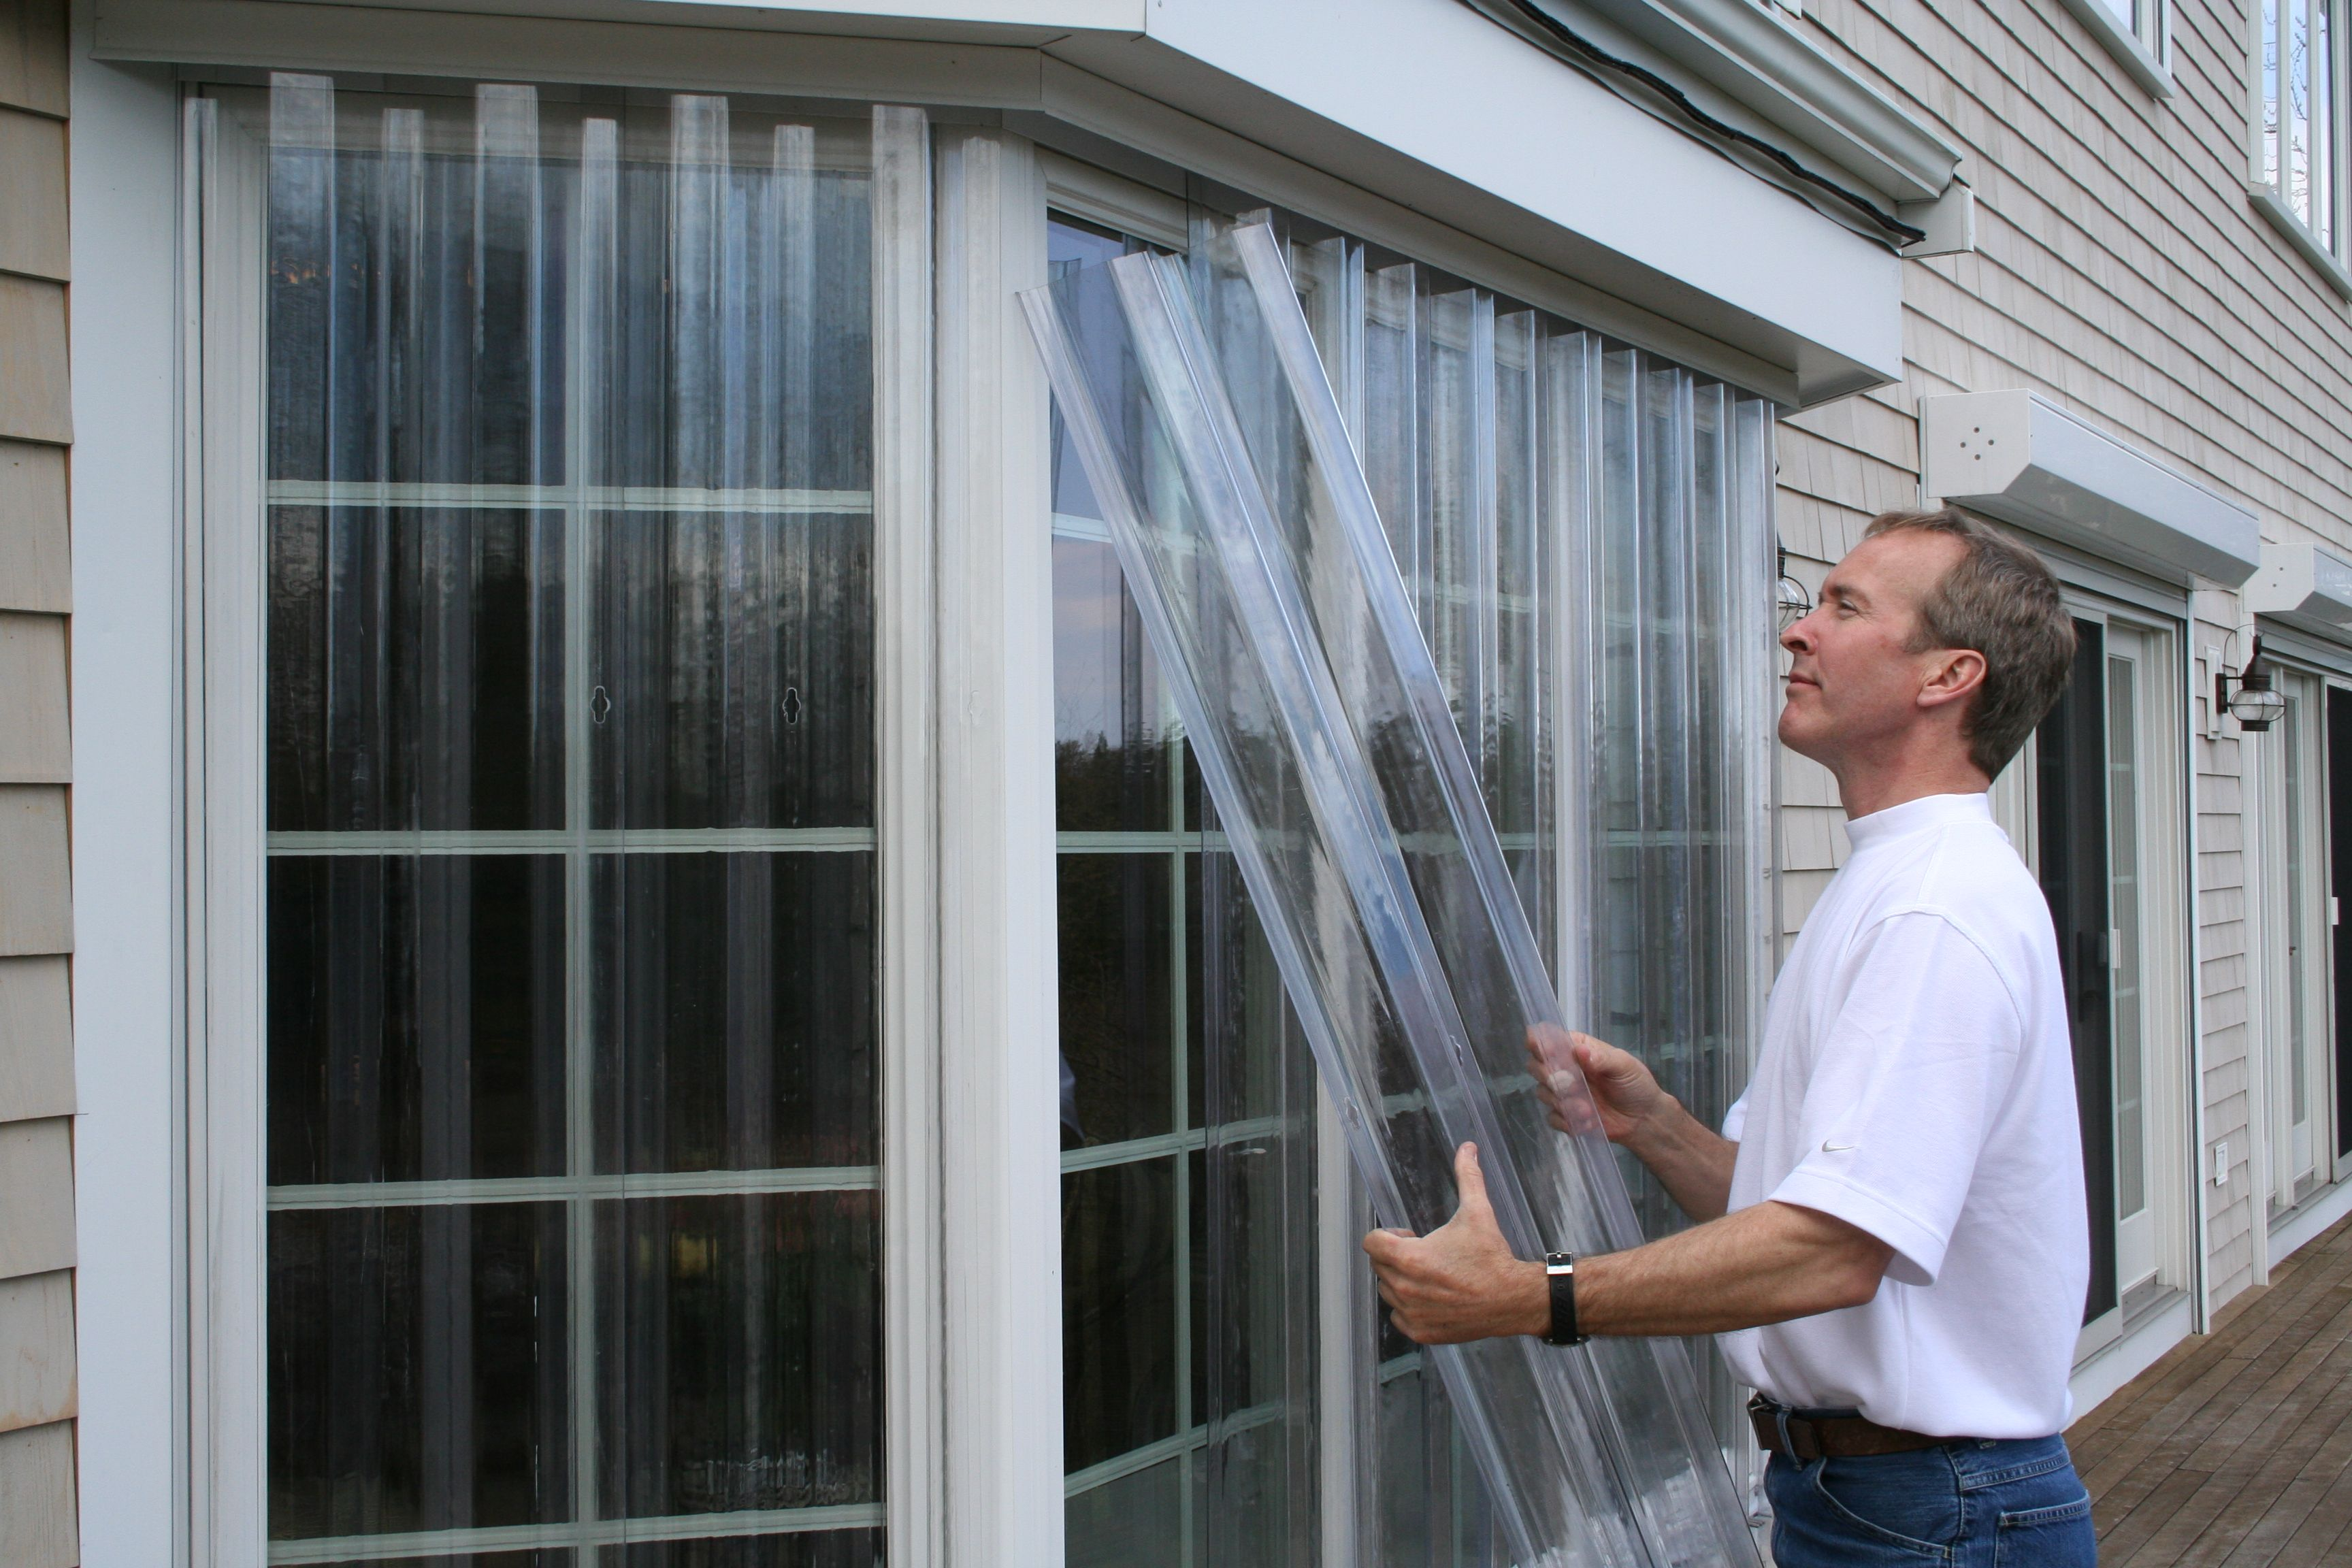 Installing Vusafe Storm Panels Over Bay Windows These Hurricane Protection Panels S Hurricane Window Protection Hurricane Shutters Shutters Exterior